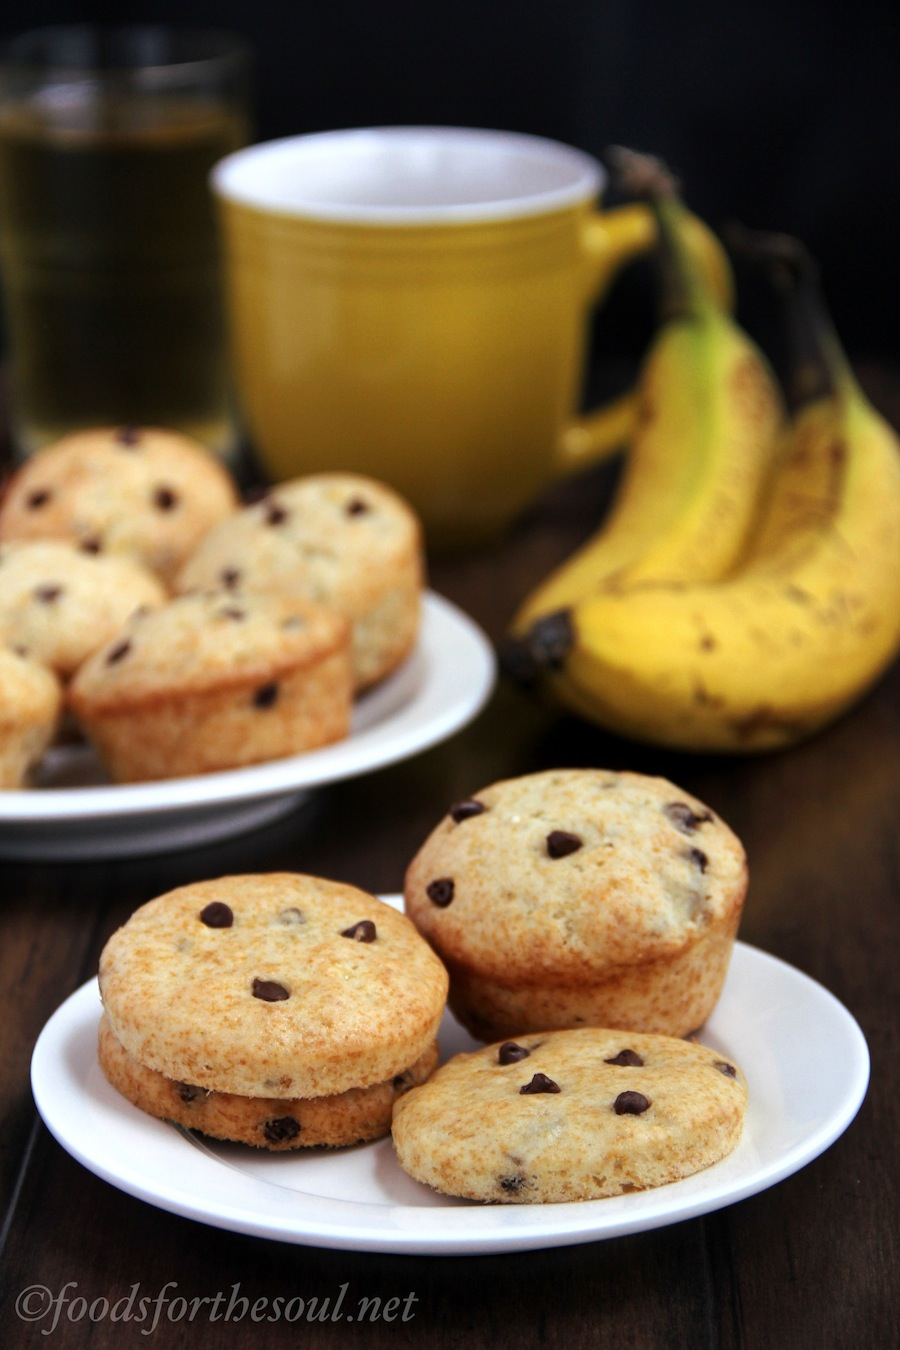 banana chocolate chip muffins and muffin tops